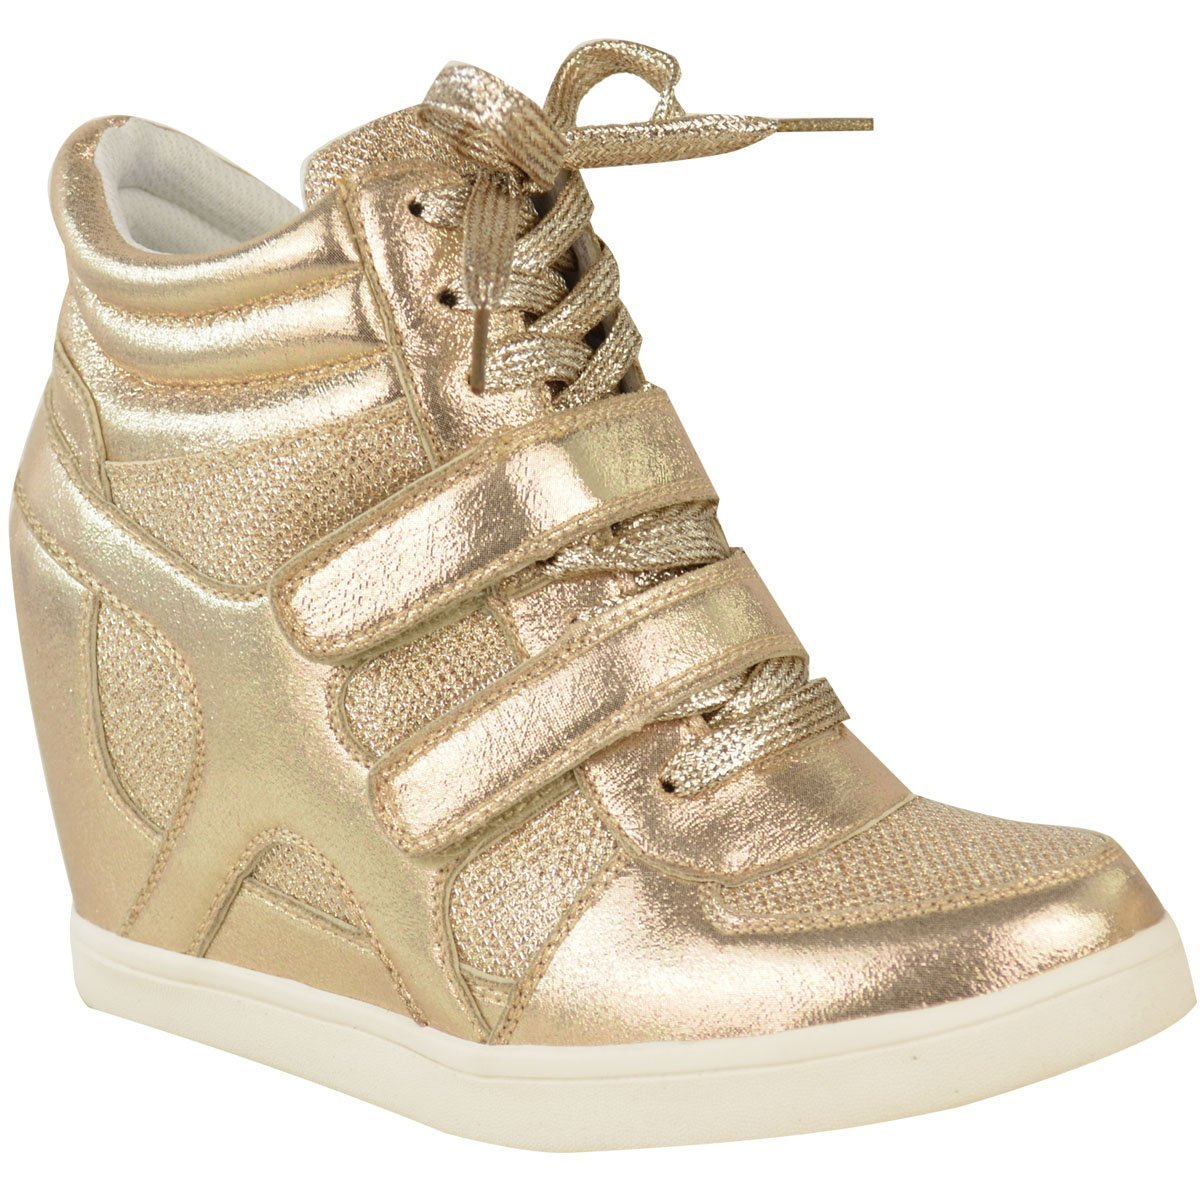 Fashion Thirsty Womens Hi Top Wedge Sneakers Trainers Sport Ankle Boots Size 8